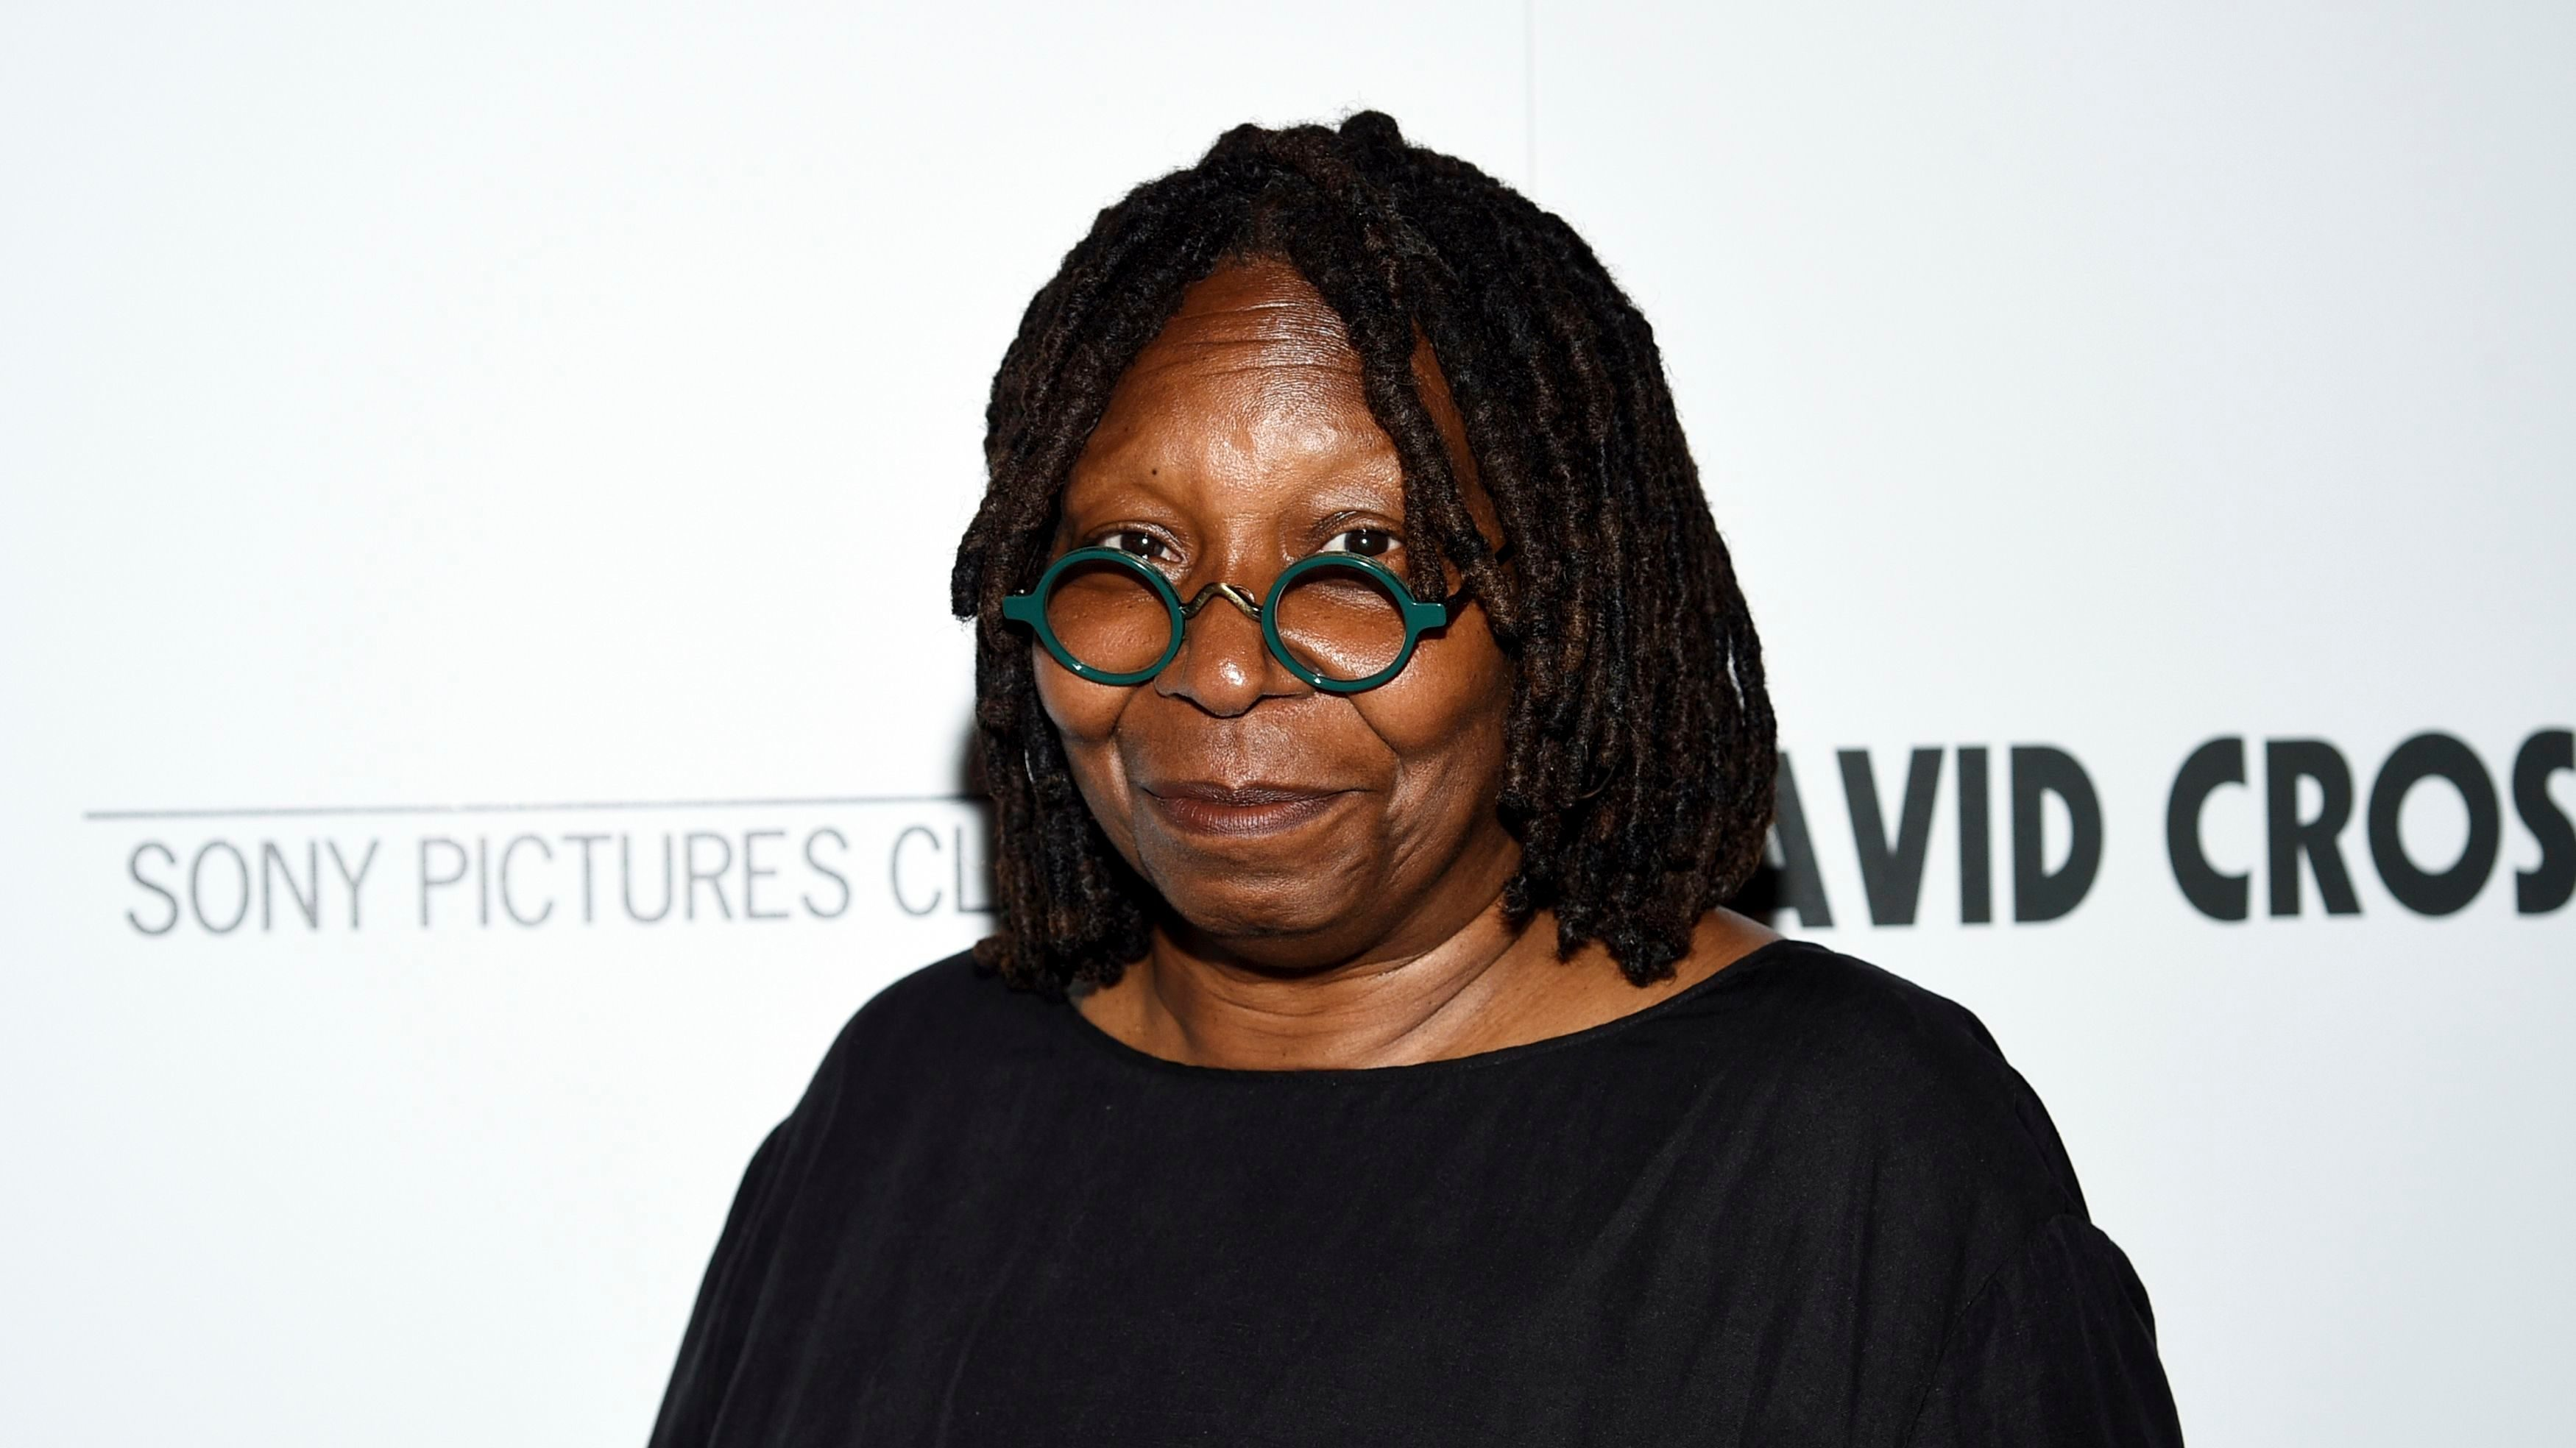 Whoopi Goldberg Doesn't Remember When Her Mom Died: 'It's So That It Doesn't Weigh Me Down'